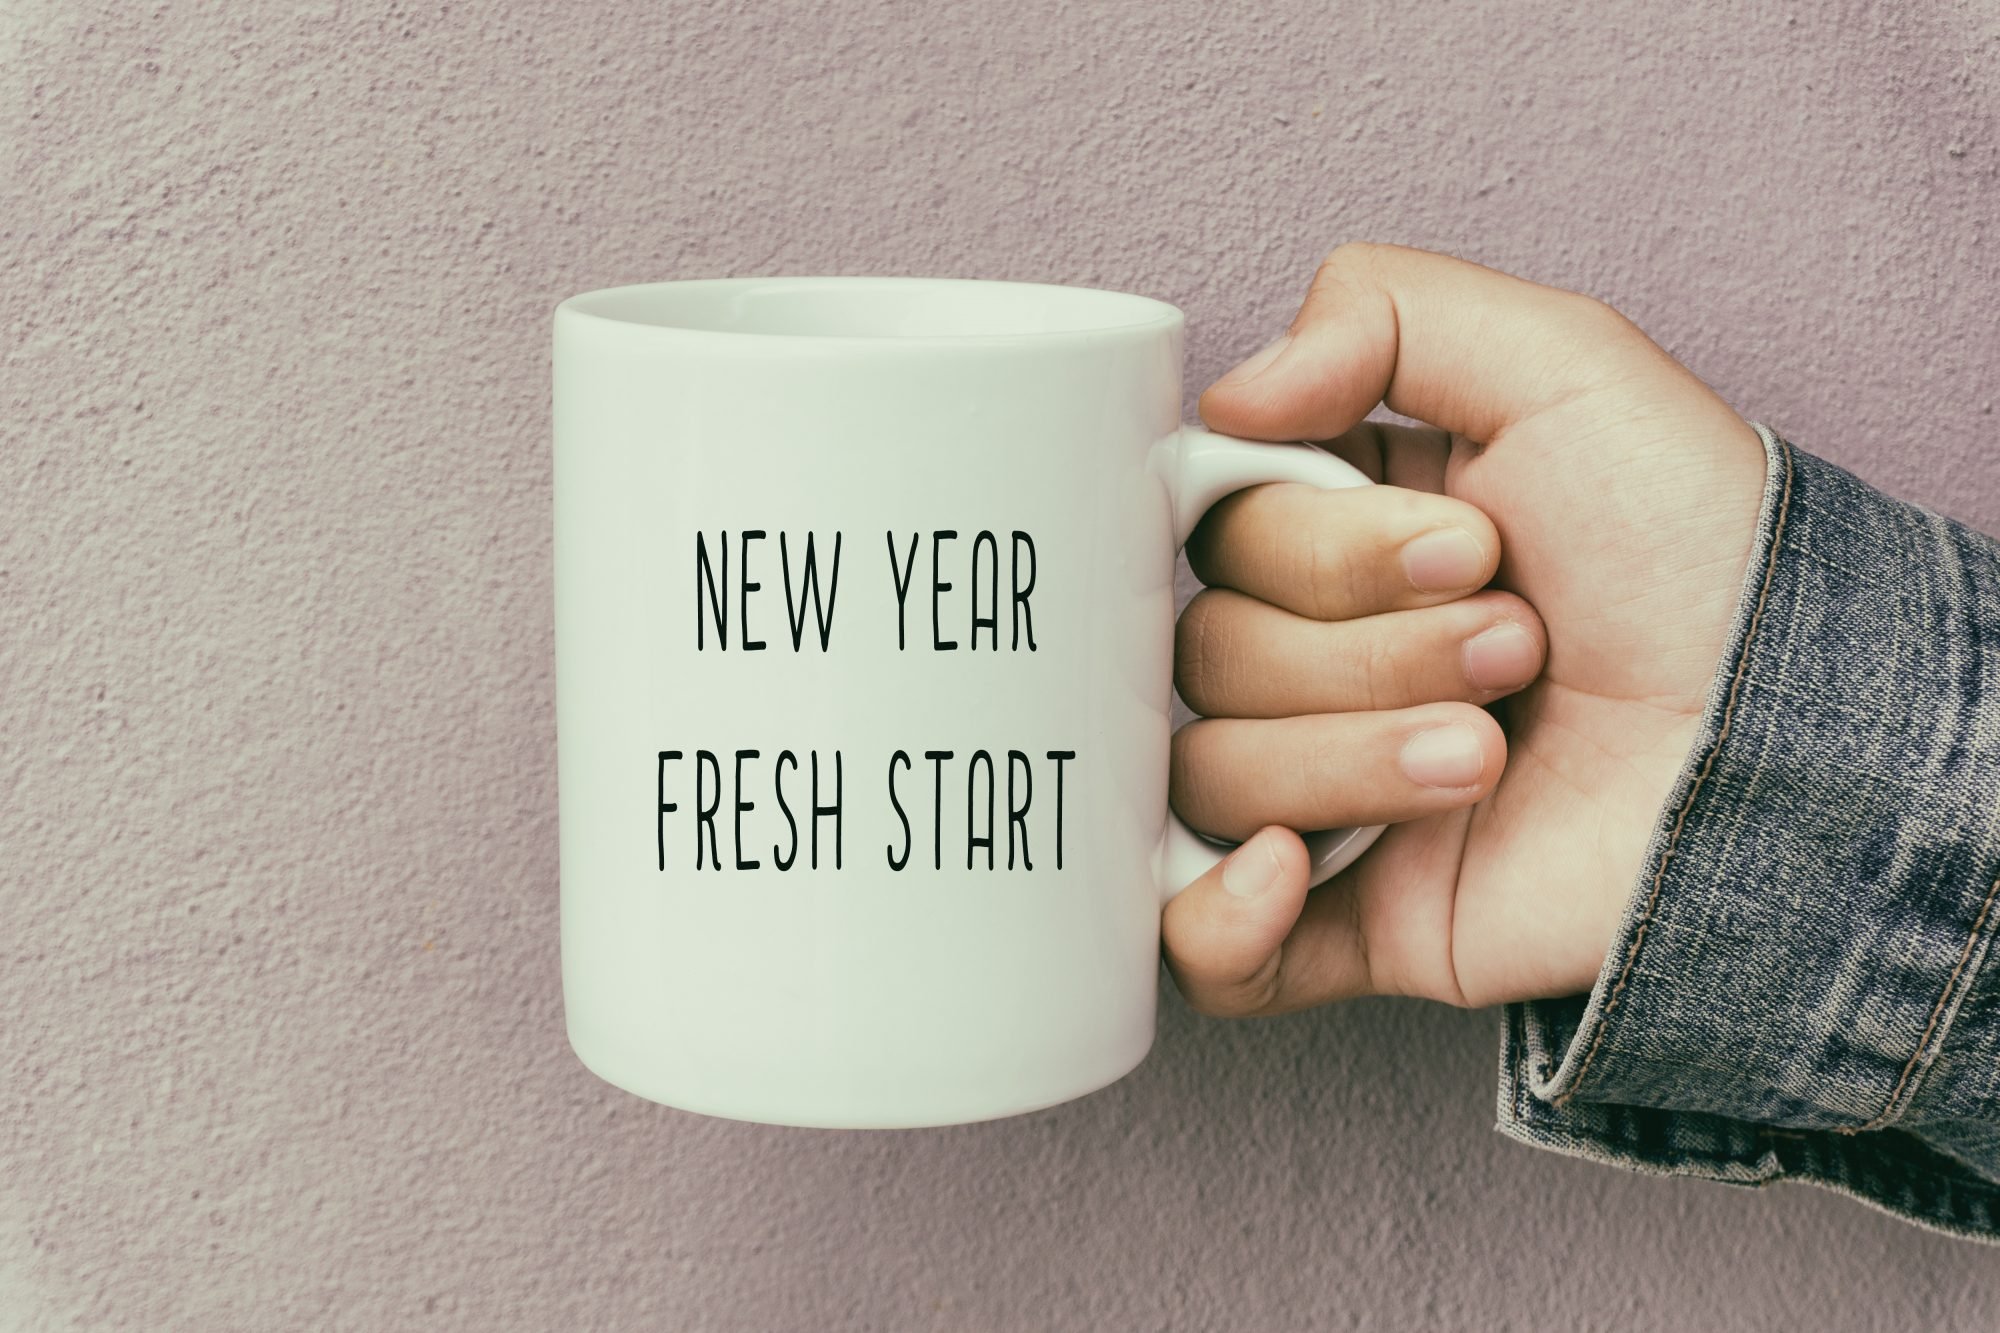 Top 10 Healthiest New Year's Resolutions